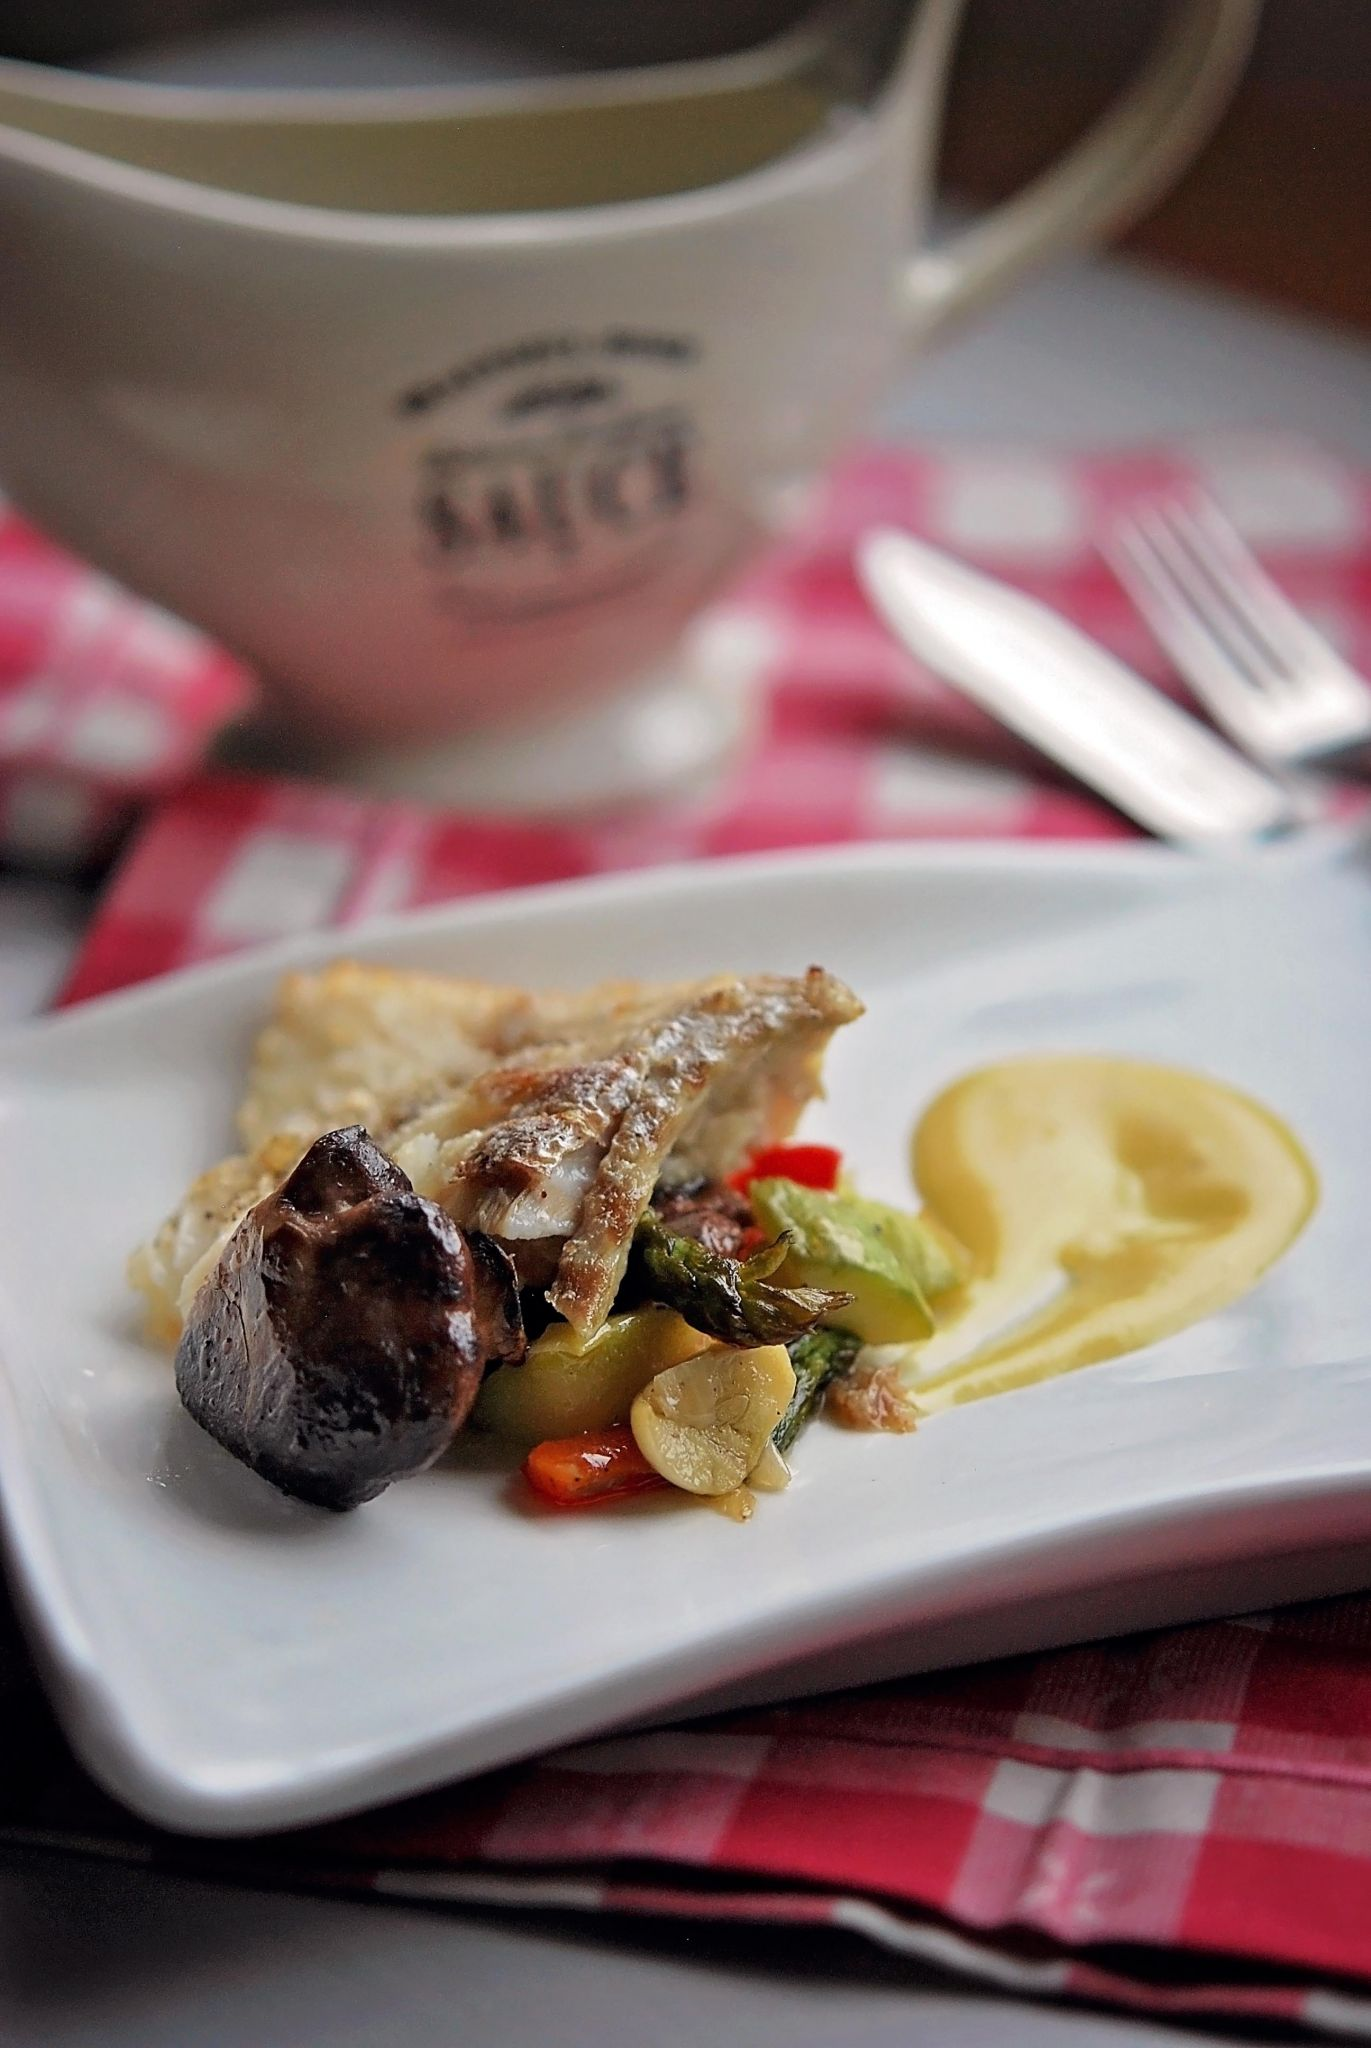 Roasted Cod With Lemon Beurre Blanc And Ratatouille